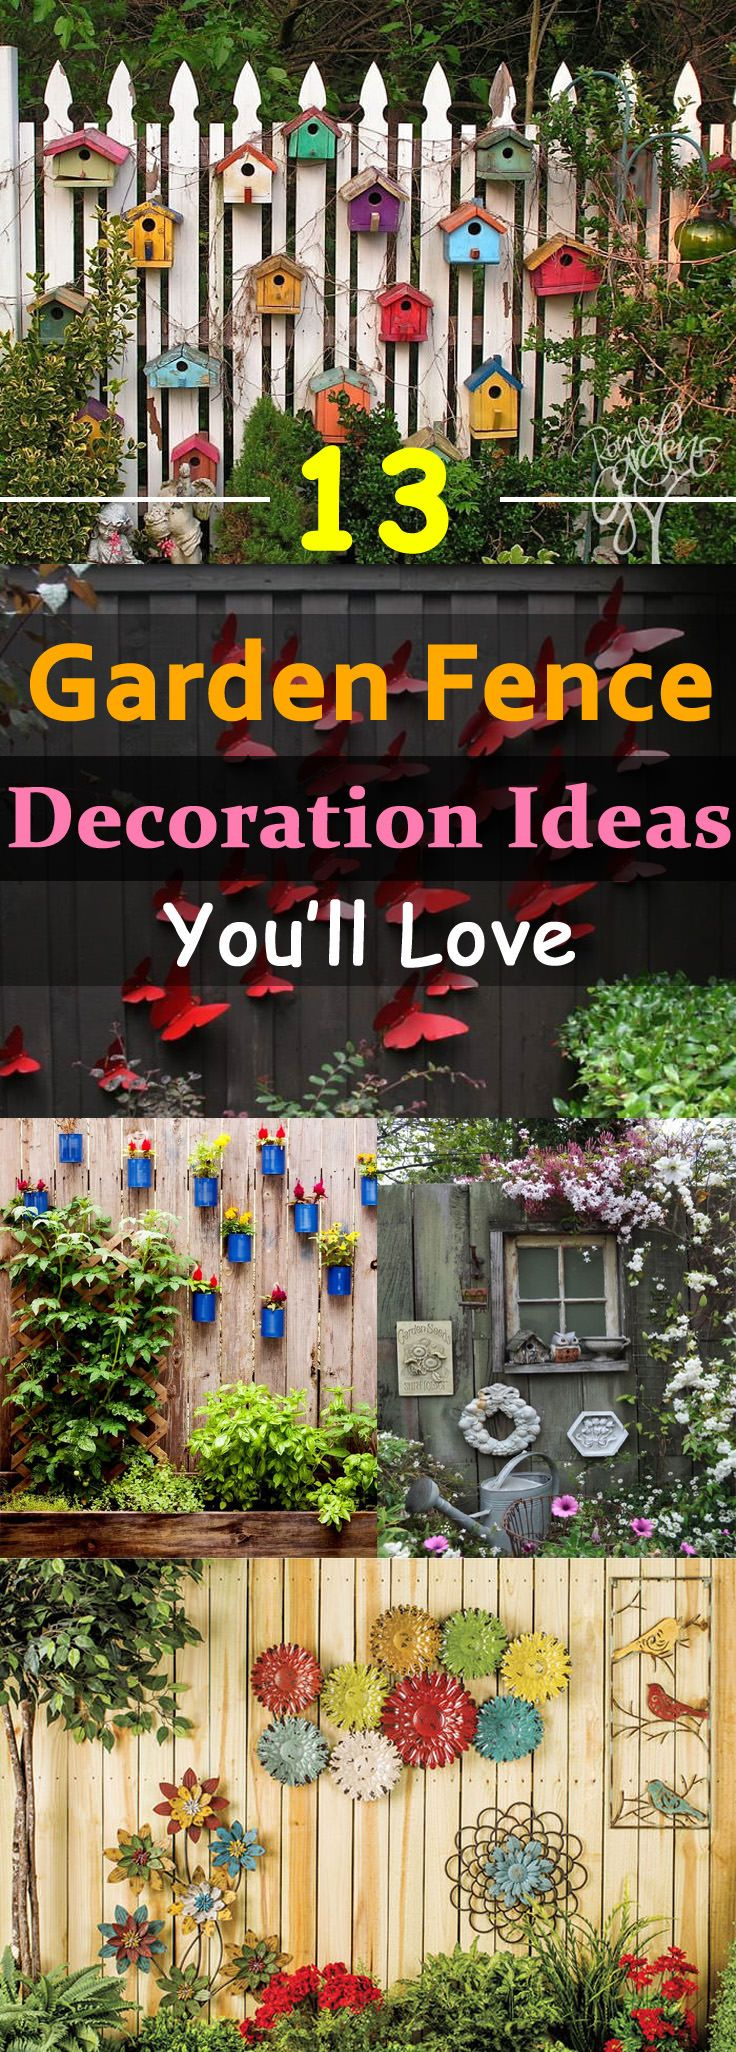 17 Best ideas about Garden Decorations on Pinterest Diy garden